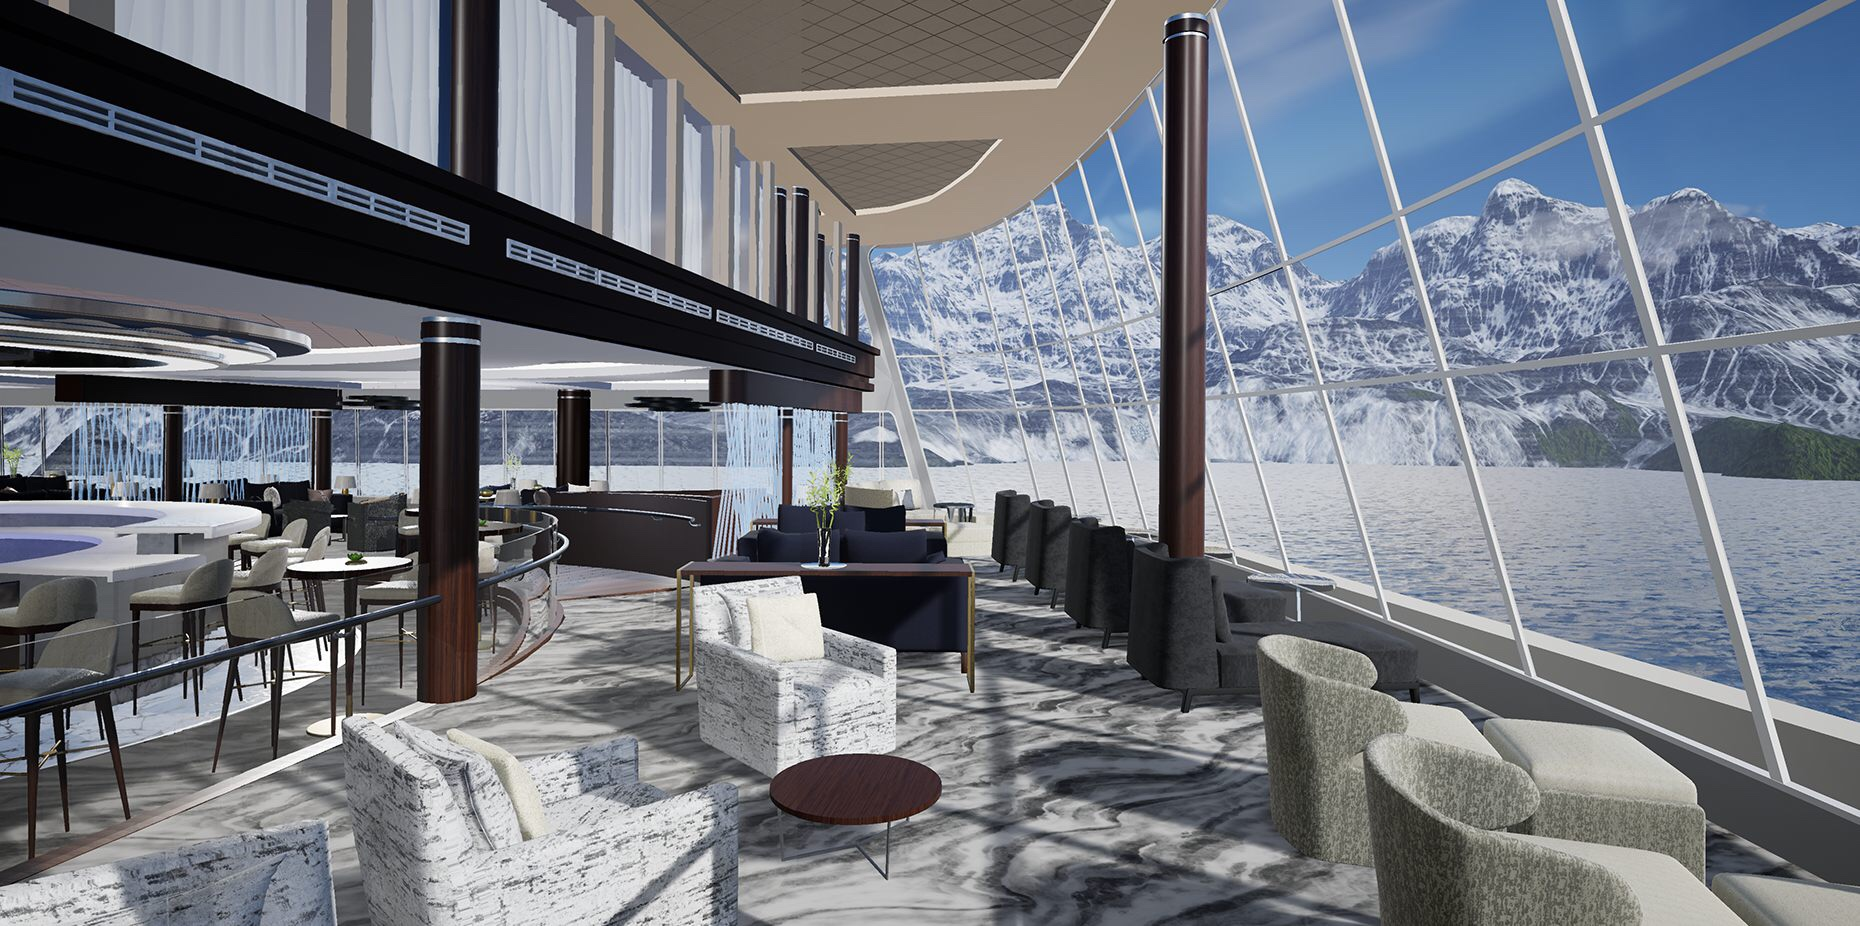 norwegian bliss observation lounge credit norwegiancruiseline